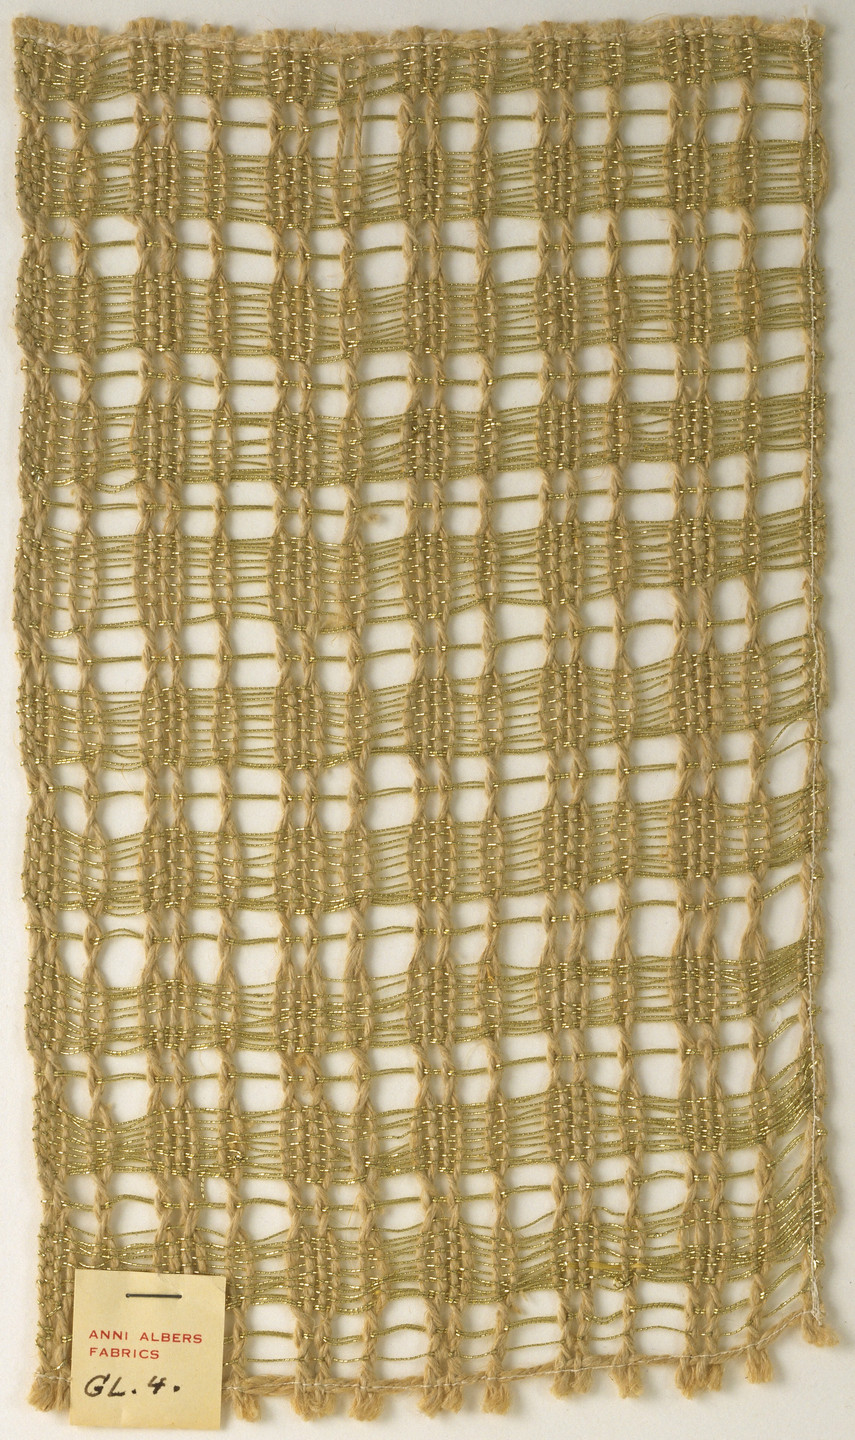 Anni Albers. Woven Fabric Sample. c. 1951